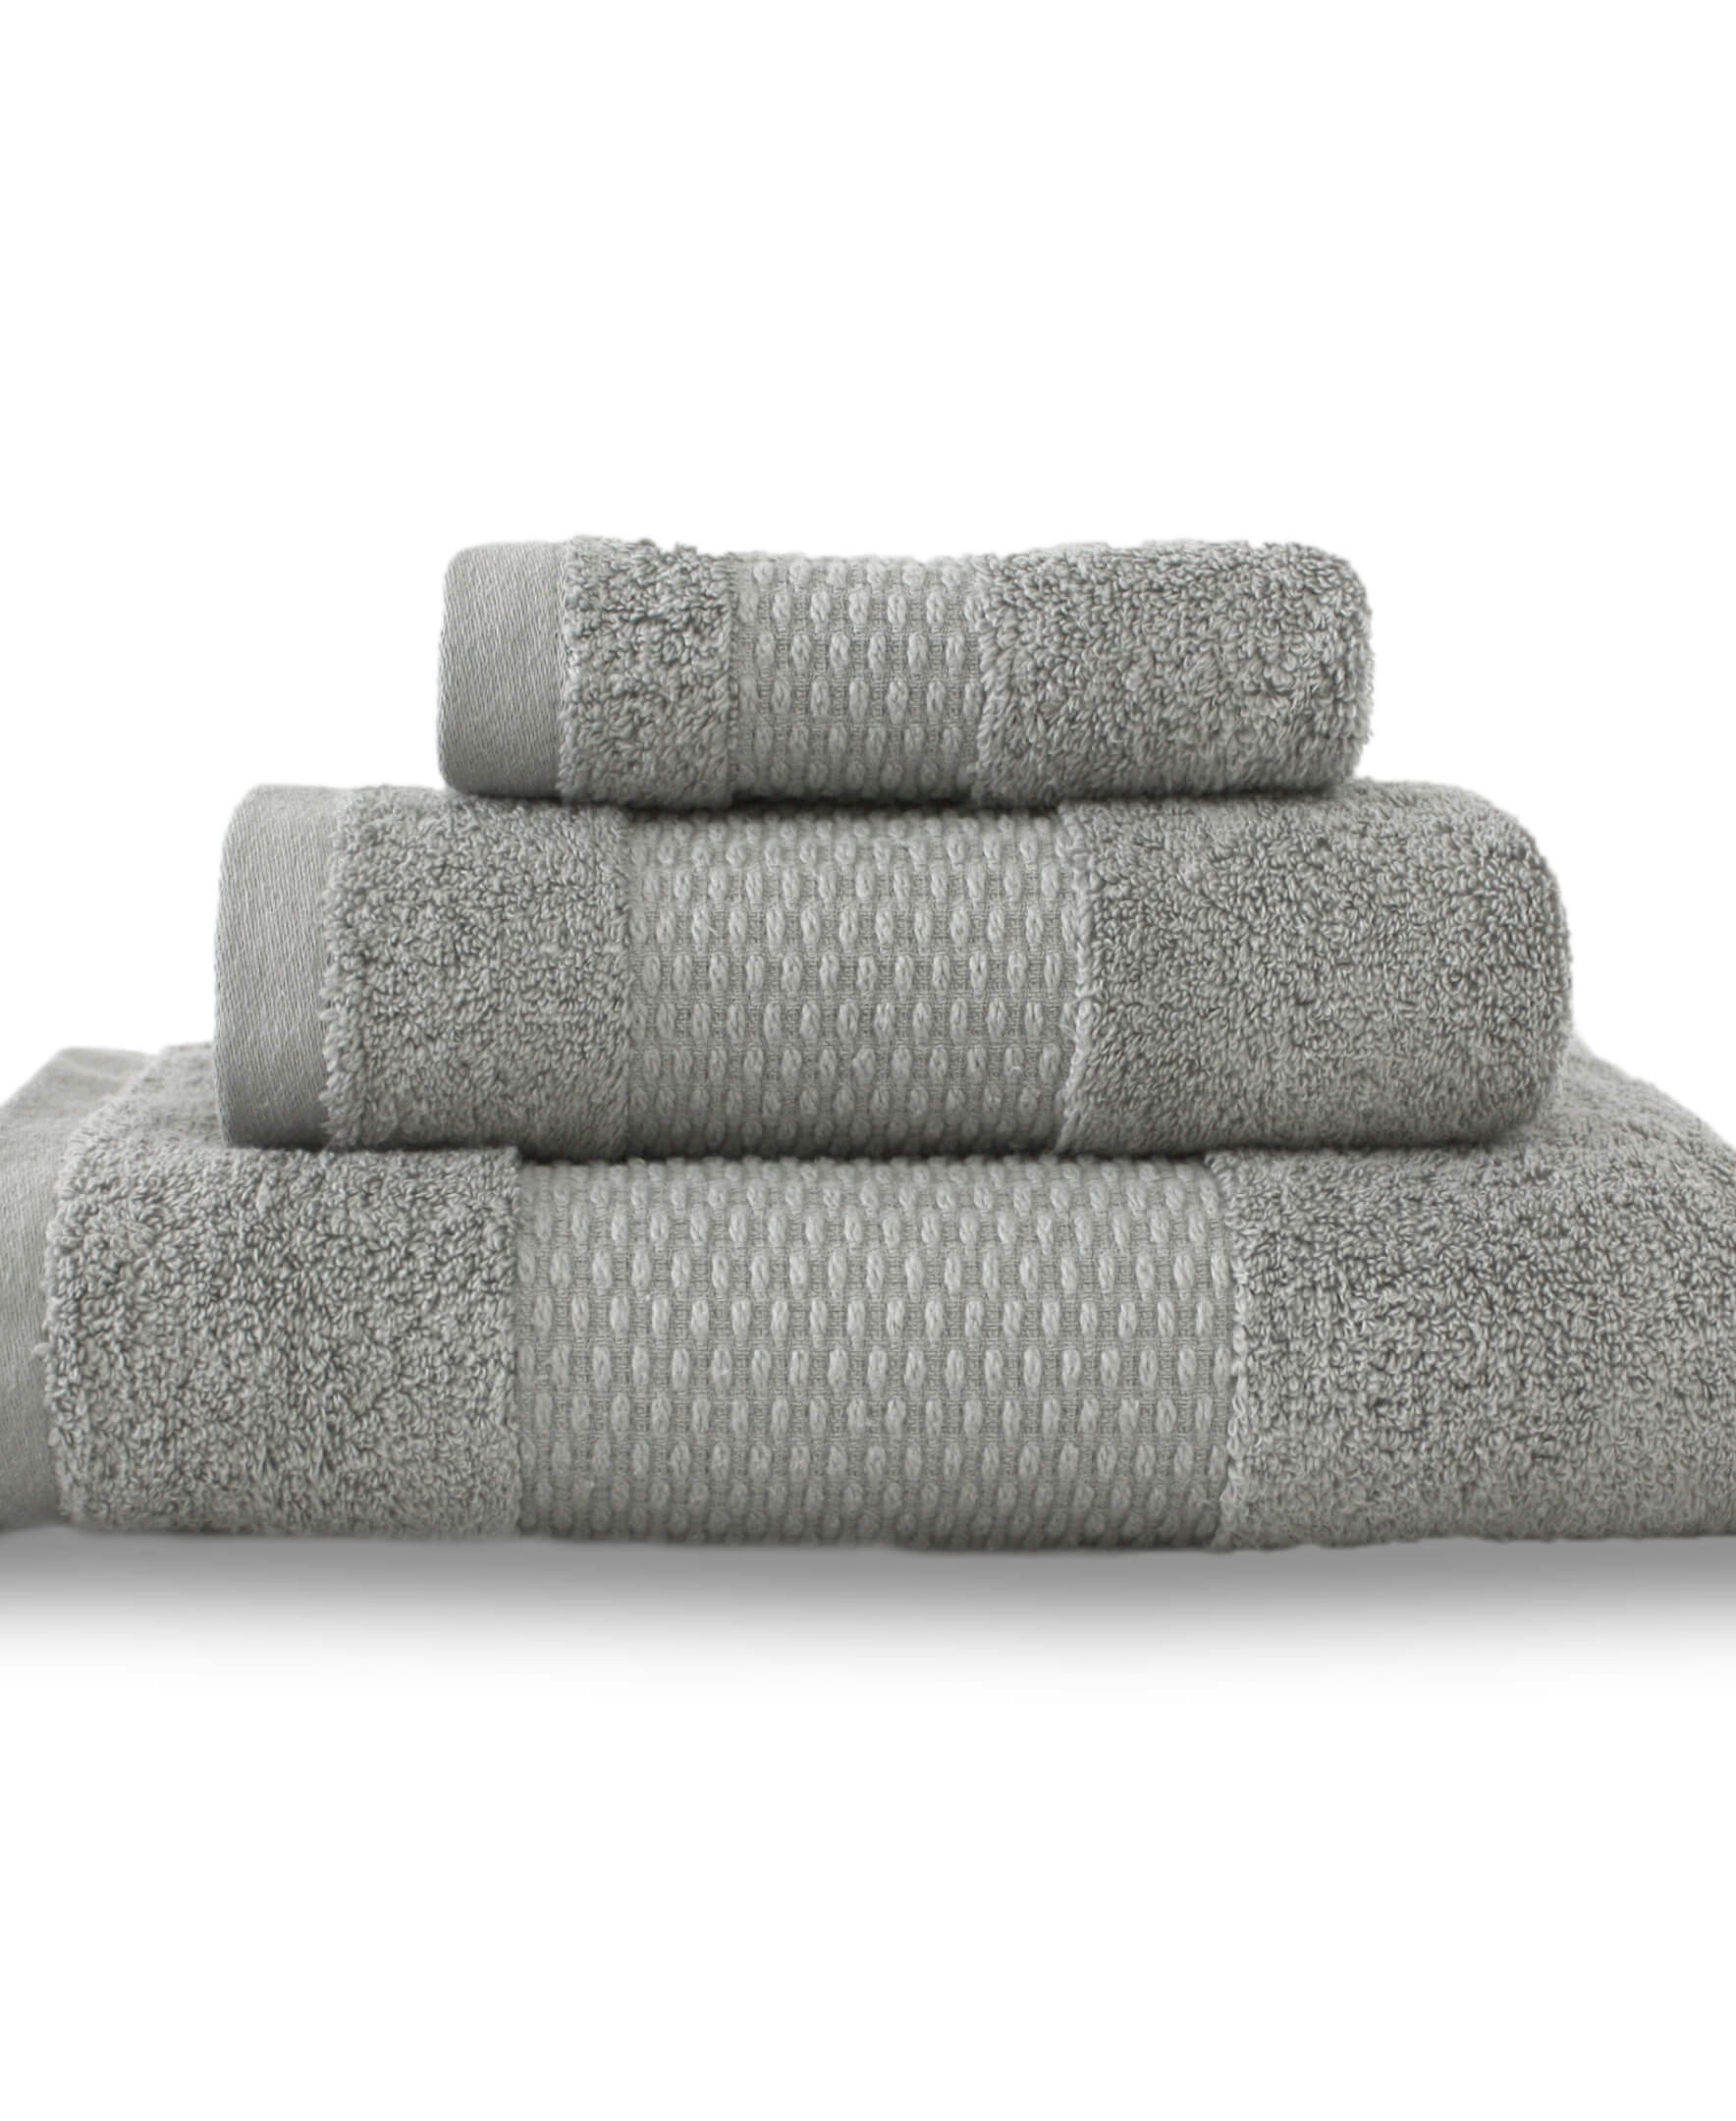 Delilah Home 100% Organic Cotton Towels Jungle Pillows